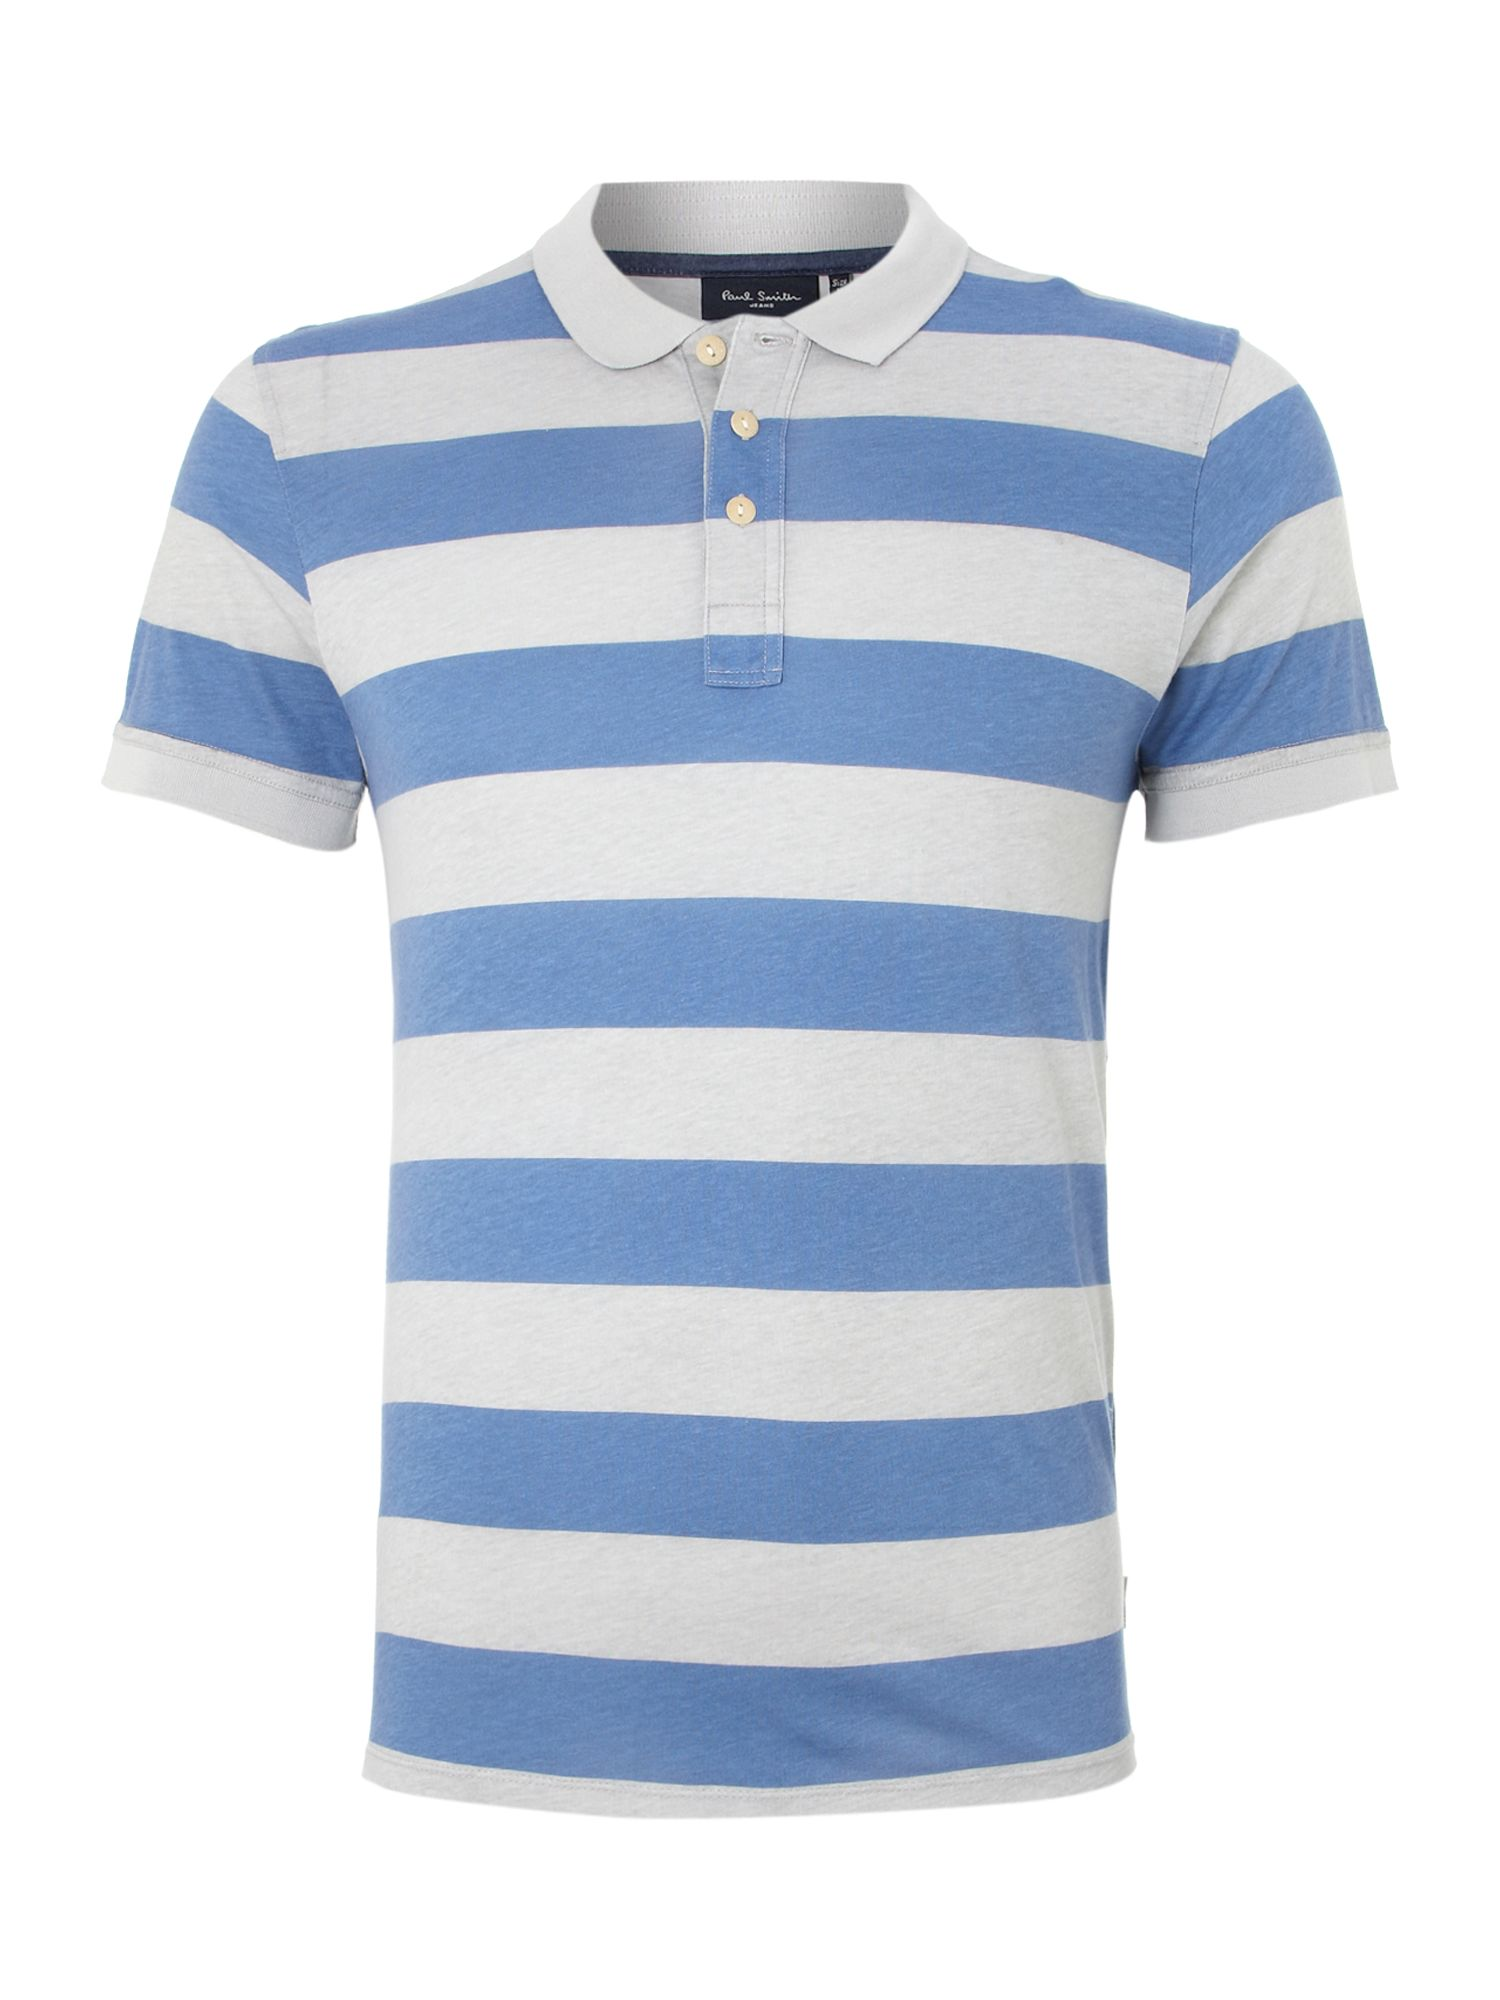 Paul smith printed striped polo shirt in blue for men sky for Blue striped shirt mens